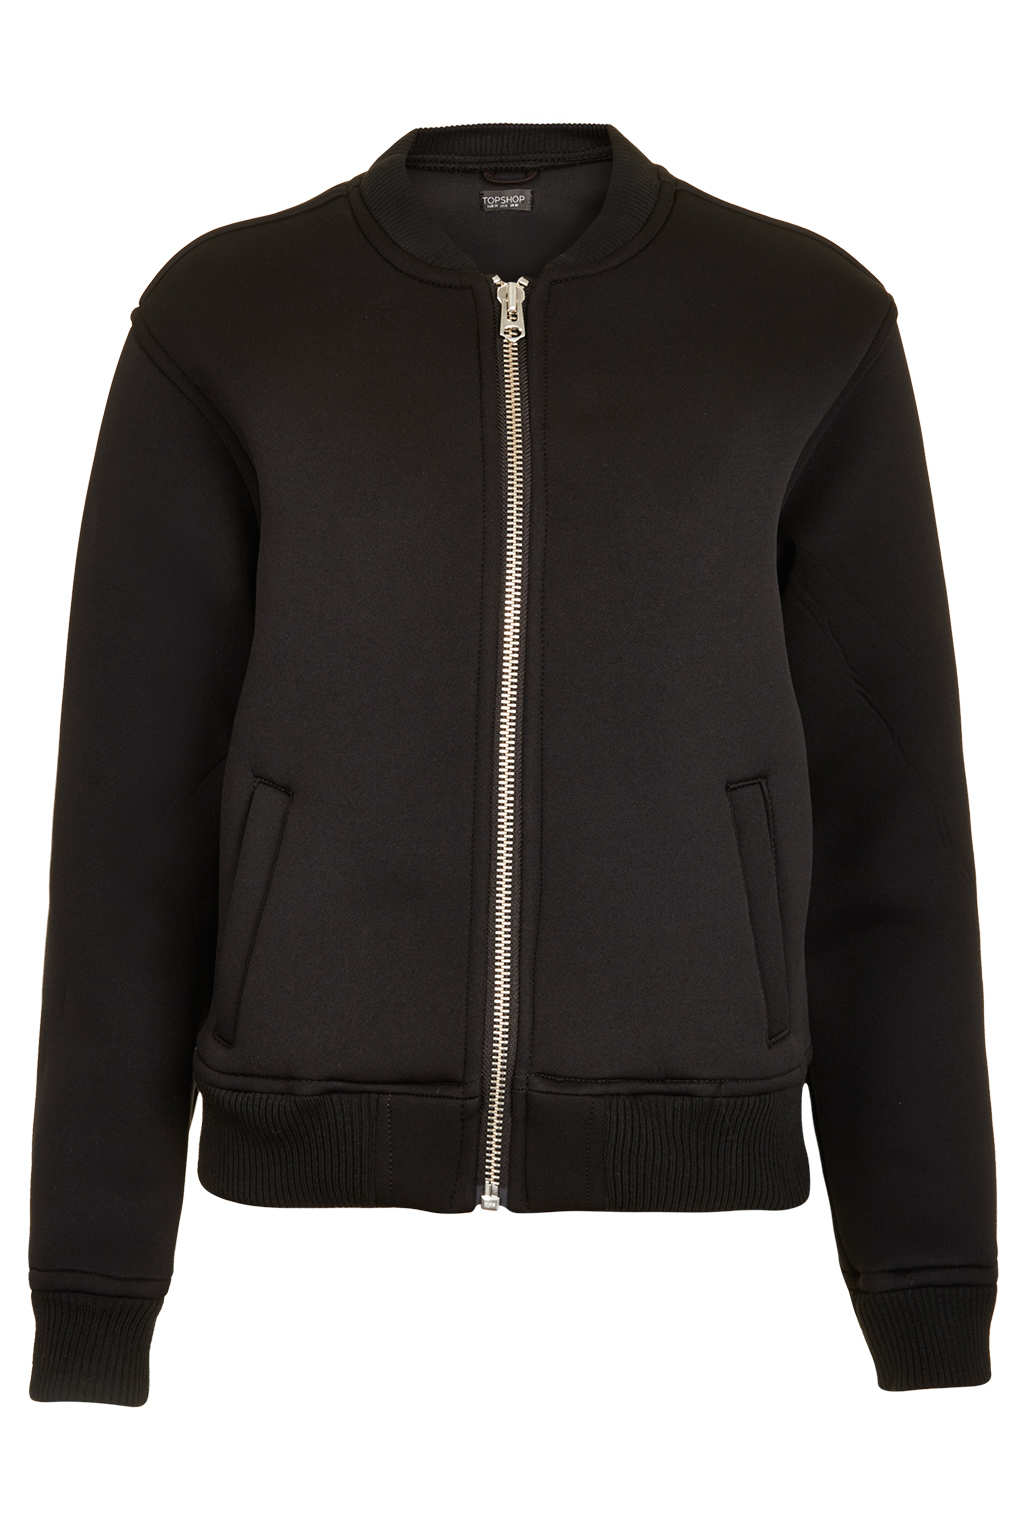 Topshop Neoprene Bomber Jacket in Black | Lyst